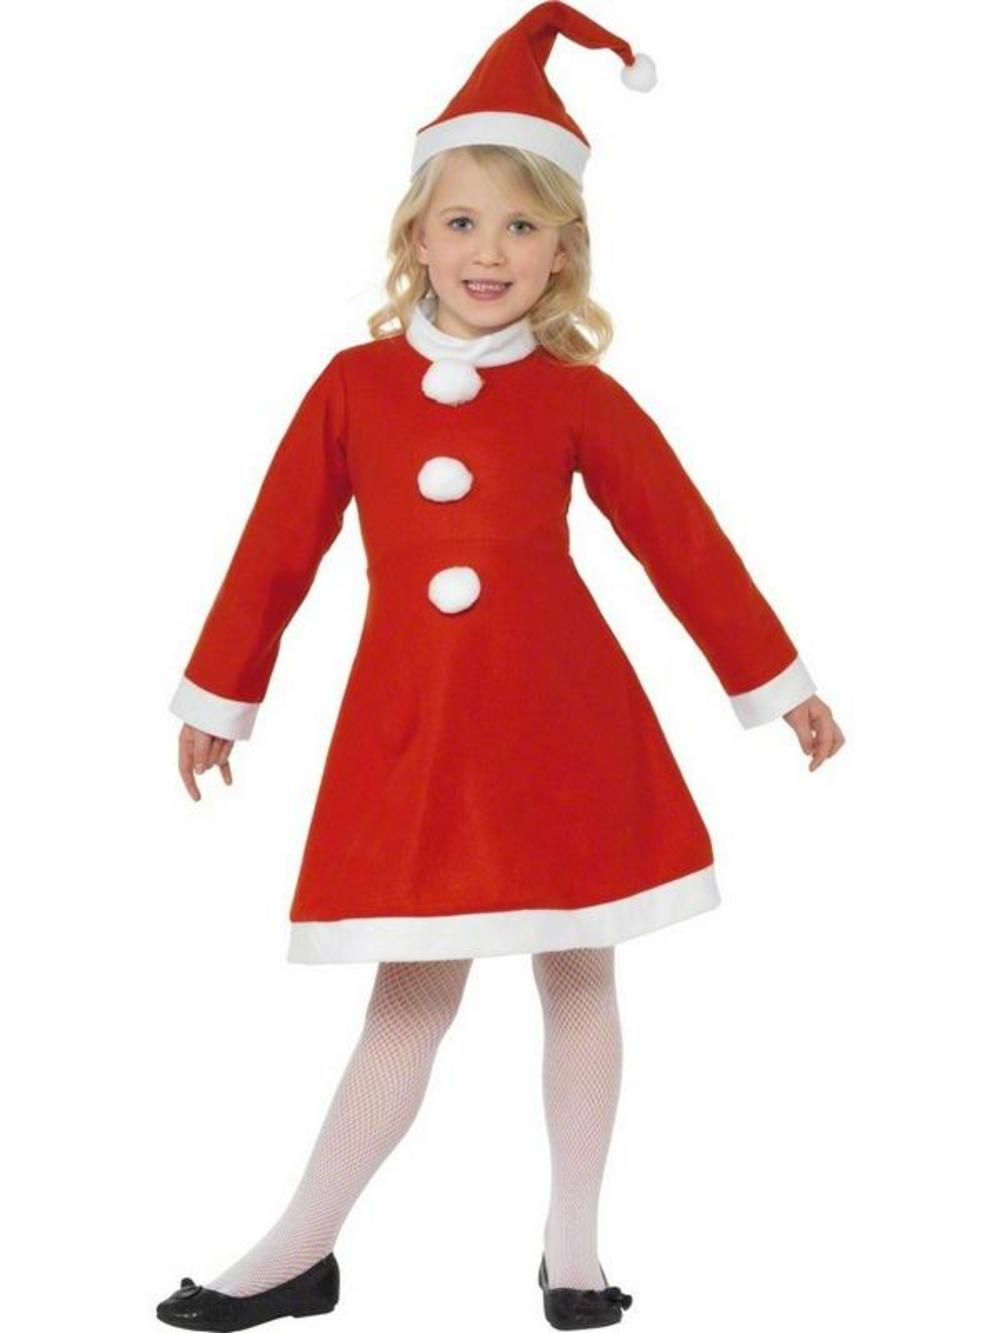 Girl's Sweet Santa Costume. $ Made By Us Exclusive. Mean Girls Christmas Costume. $$ Child Santa Suit Costume. $ Made By Us Exclusive. Plus Size Sweet Santa Costume. Our Santa Claus costumes range from printed T-shirts and hoodies to the full velvet suit with faux fur trim. And we have sizes from infant through adult.